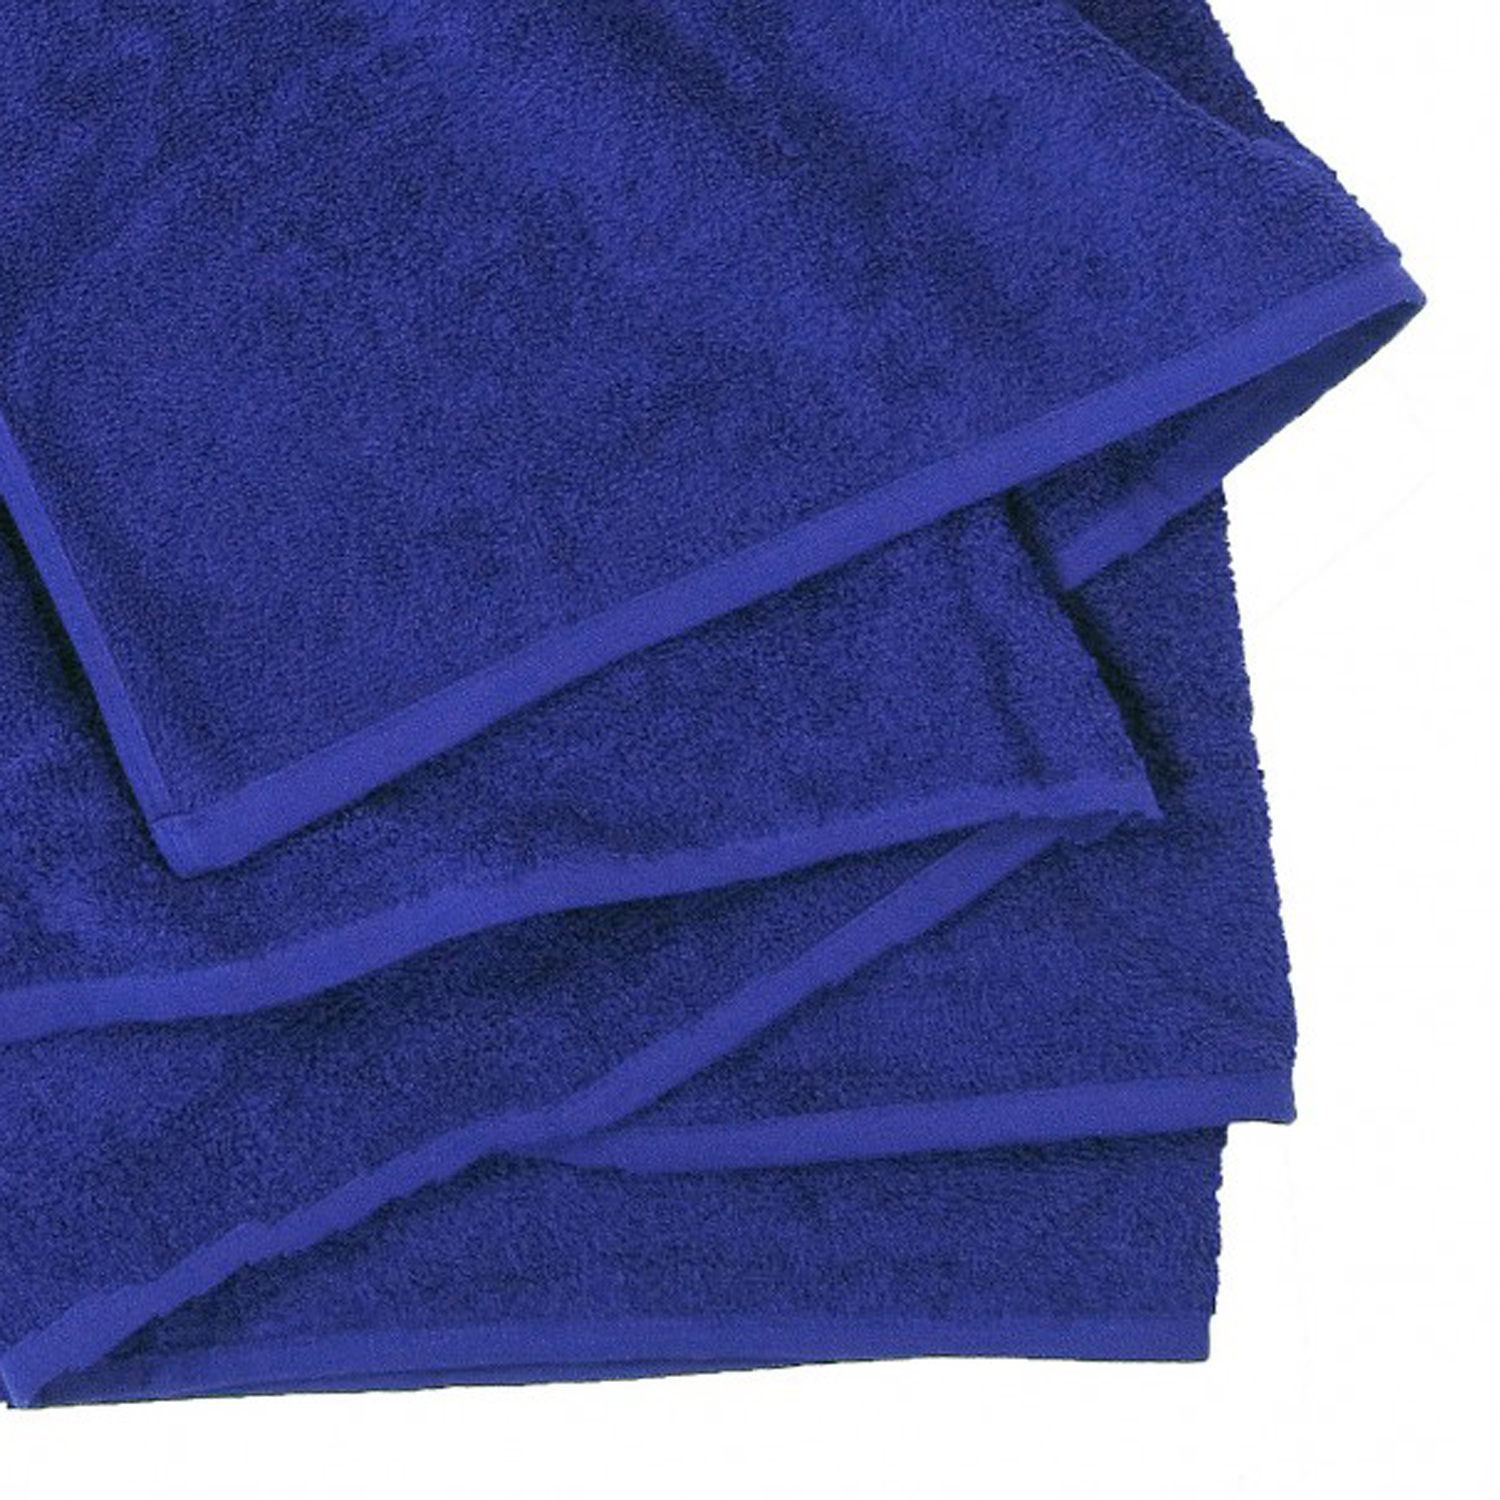 Detail Image to Royal blue towel by Felawie in oversize 155 x 220 cm